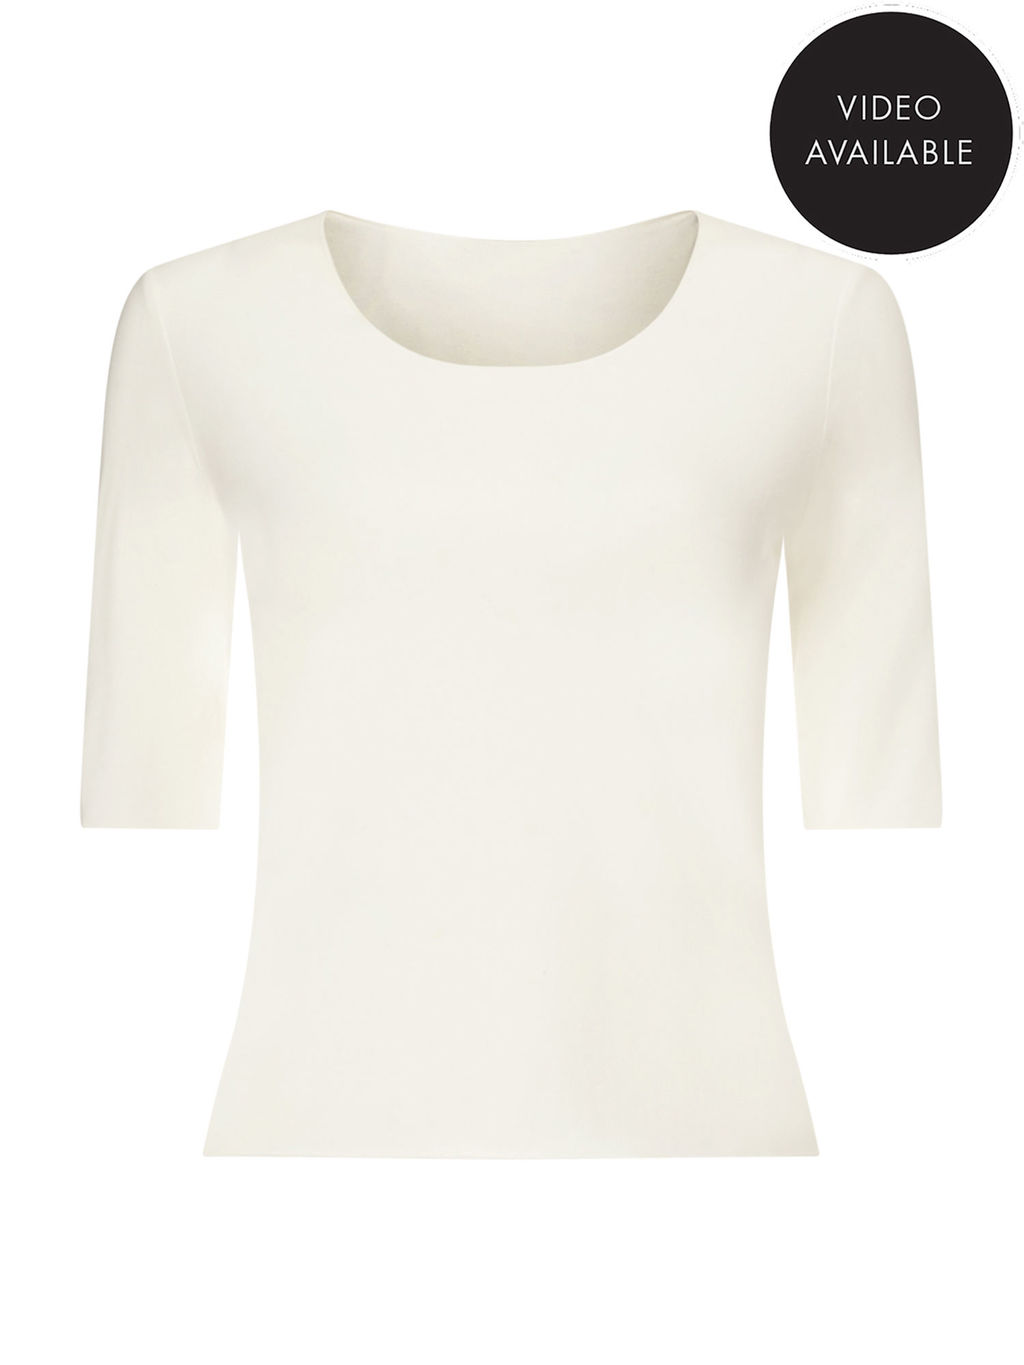 Jeff Banks Ivory Jersey Top - neckline: round neck; pattern: plain; predominant colour: white; occasions: casual; length: standard; style: top; fibres: viscose/rayon - stretch; fit: body skimming; sleeve length: half sleeve; sleeve style: standard; pattern type: fabric; texture group: jersey - stretchy/drapey; season: s/s 2016; wardrobe: basic